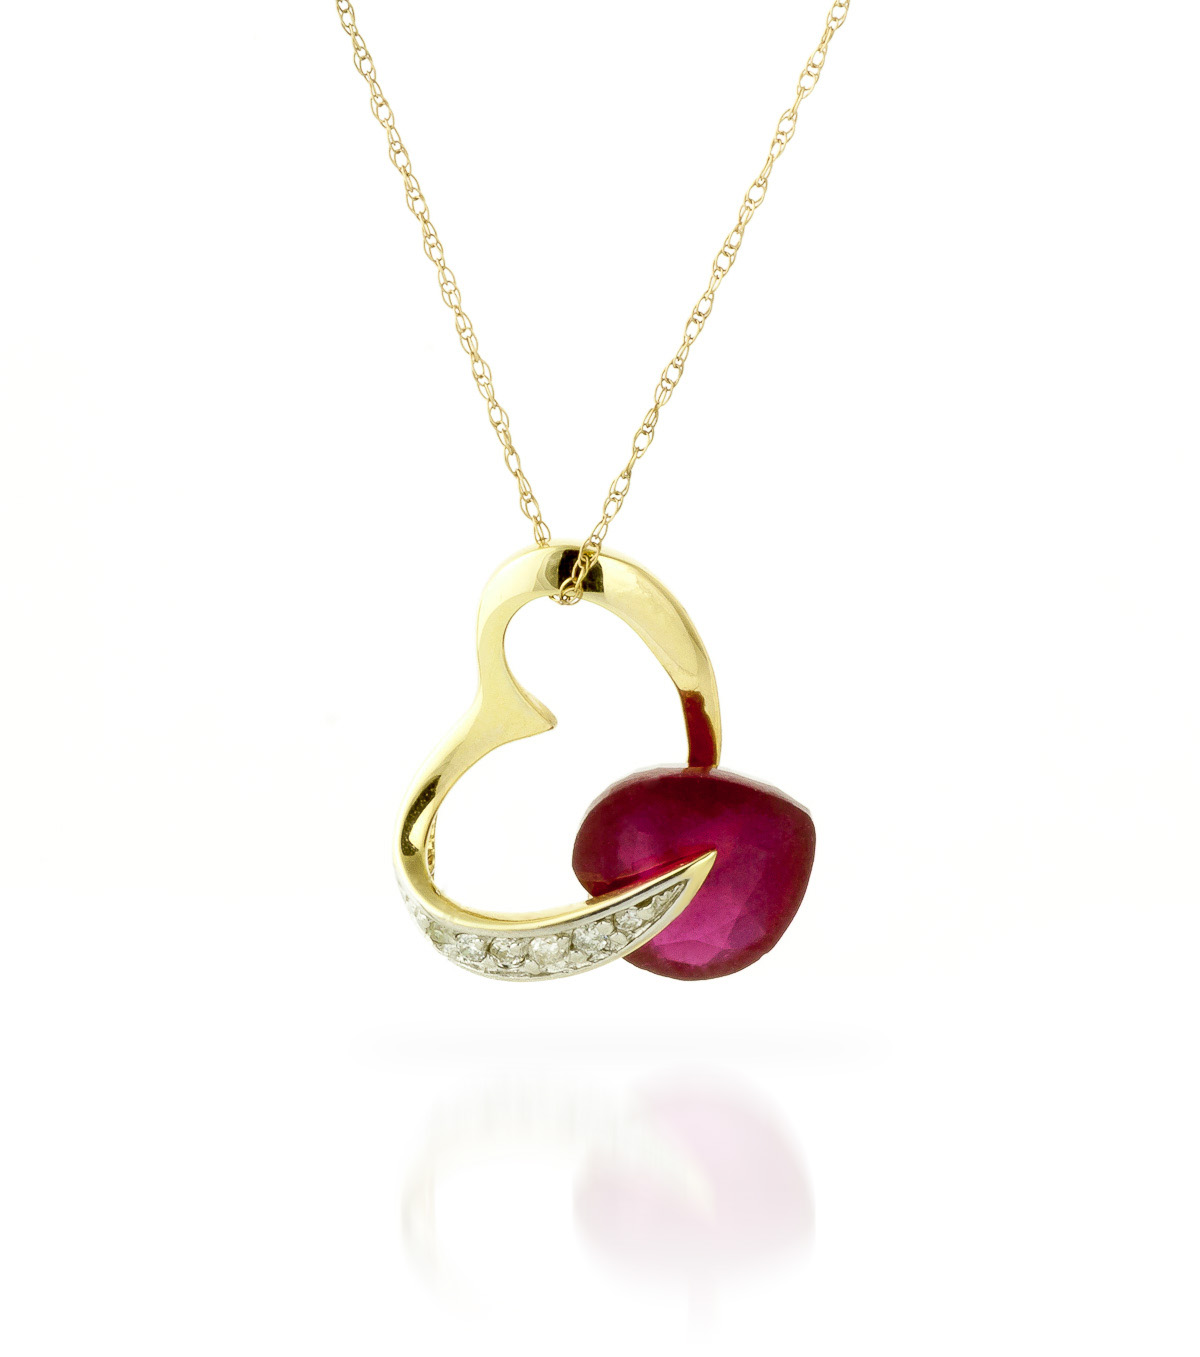 Ruby and Diamond Pendant Necklace 4.3ct in 9ct Gold